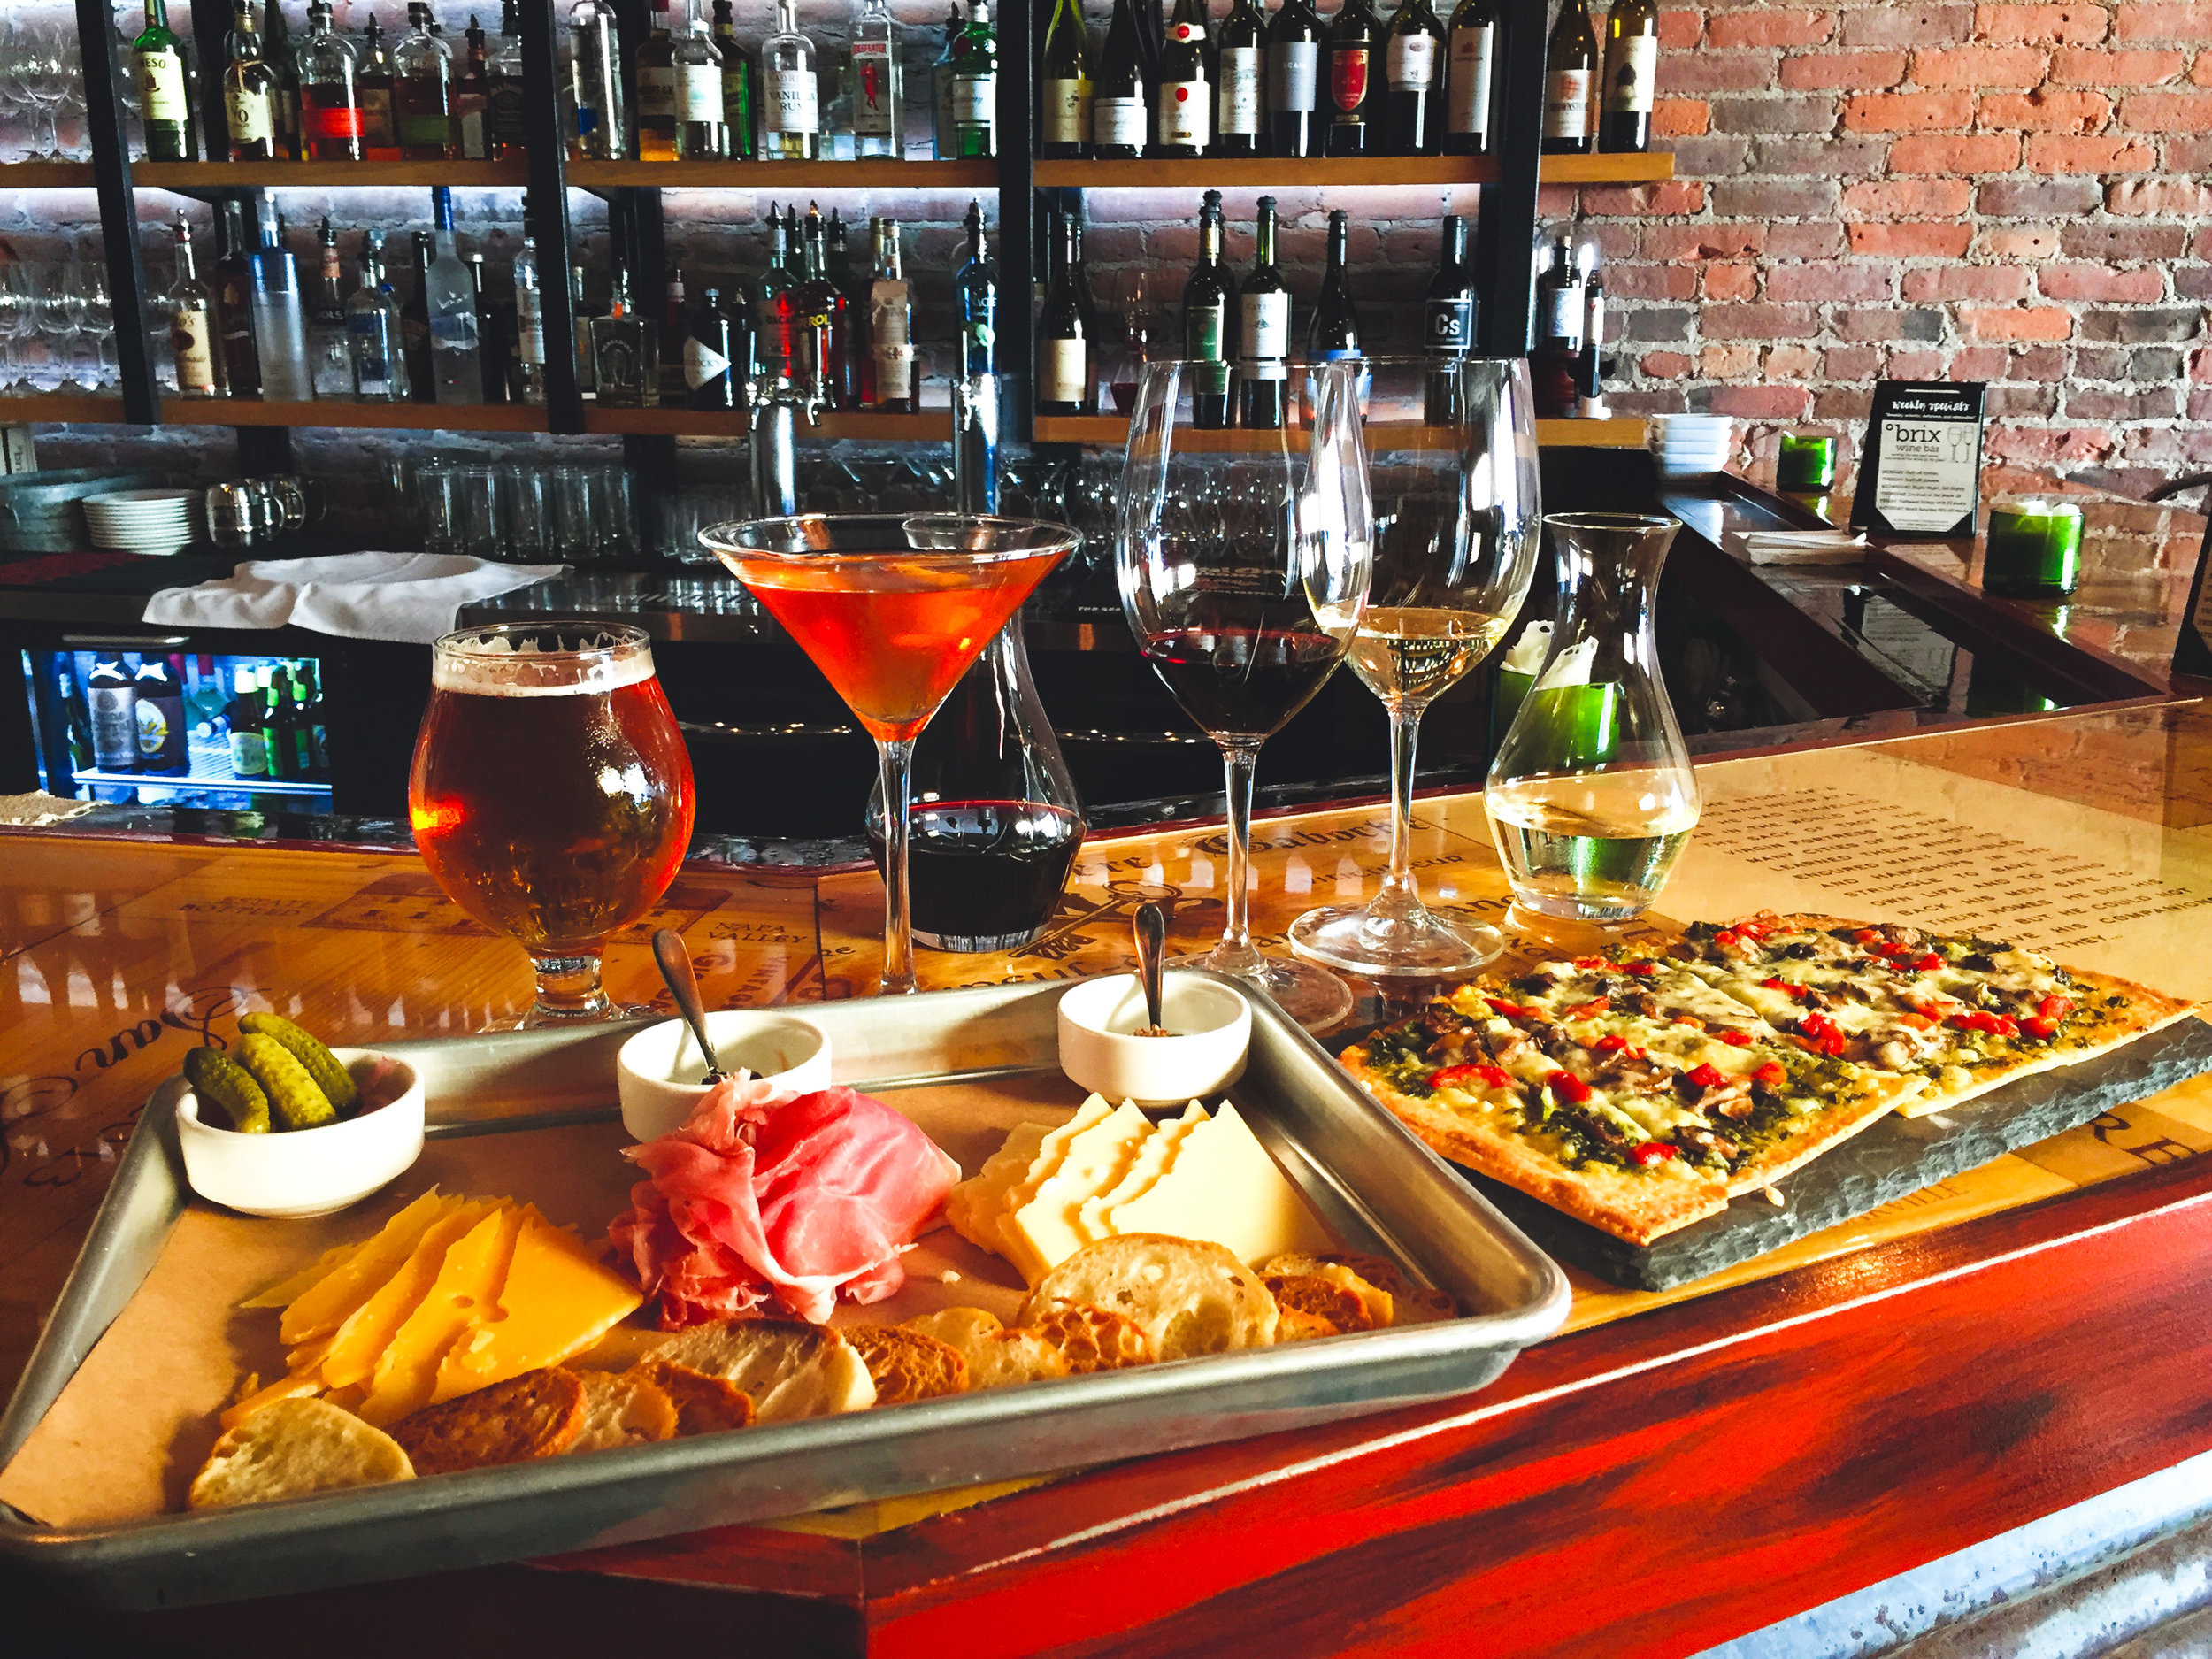 A charcuterie and cheese board, a flat bread pizza and drink options at Brix Bistro in Downtown Rutland, Vermont.